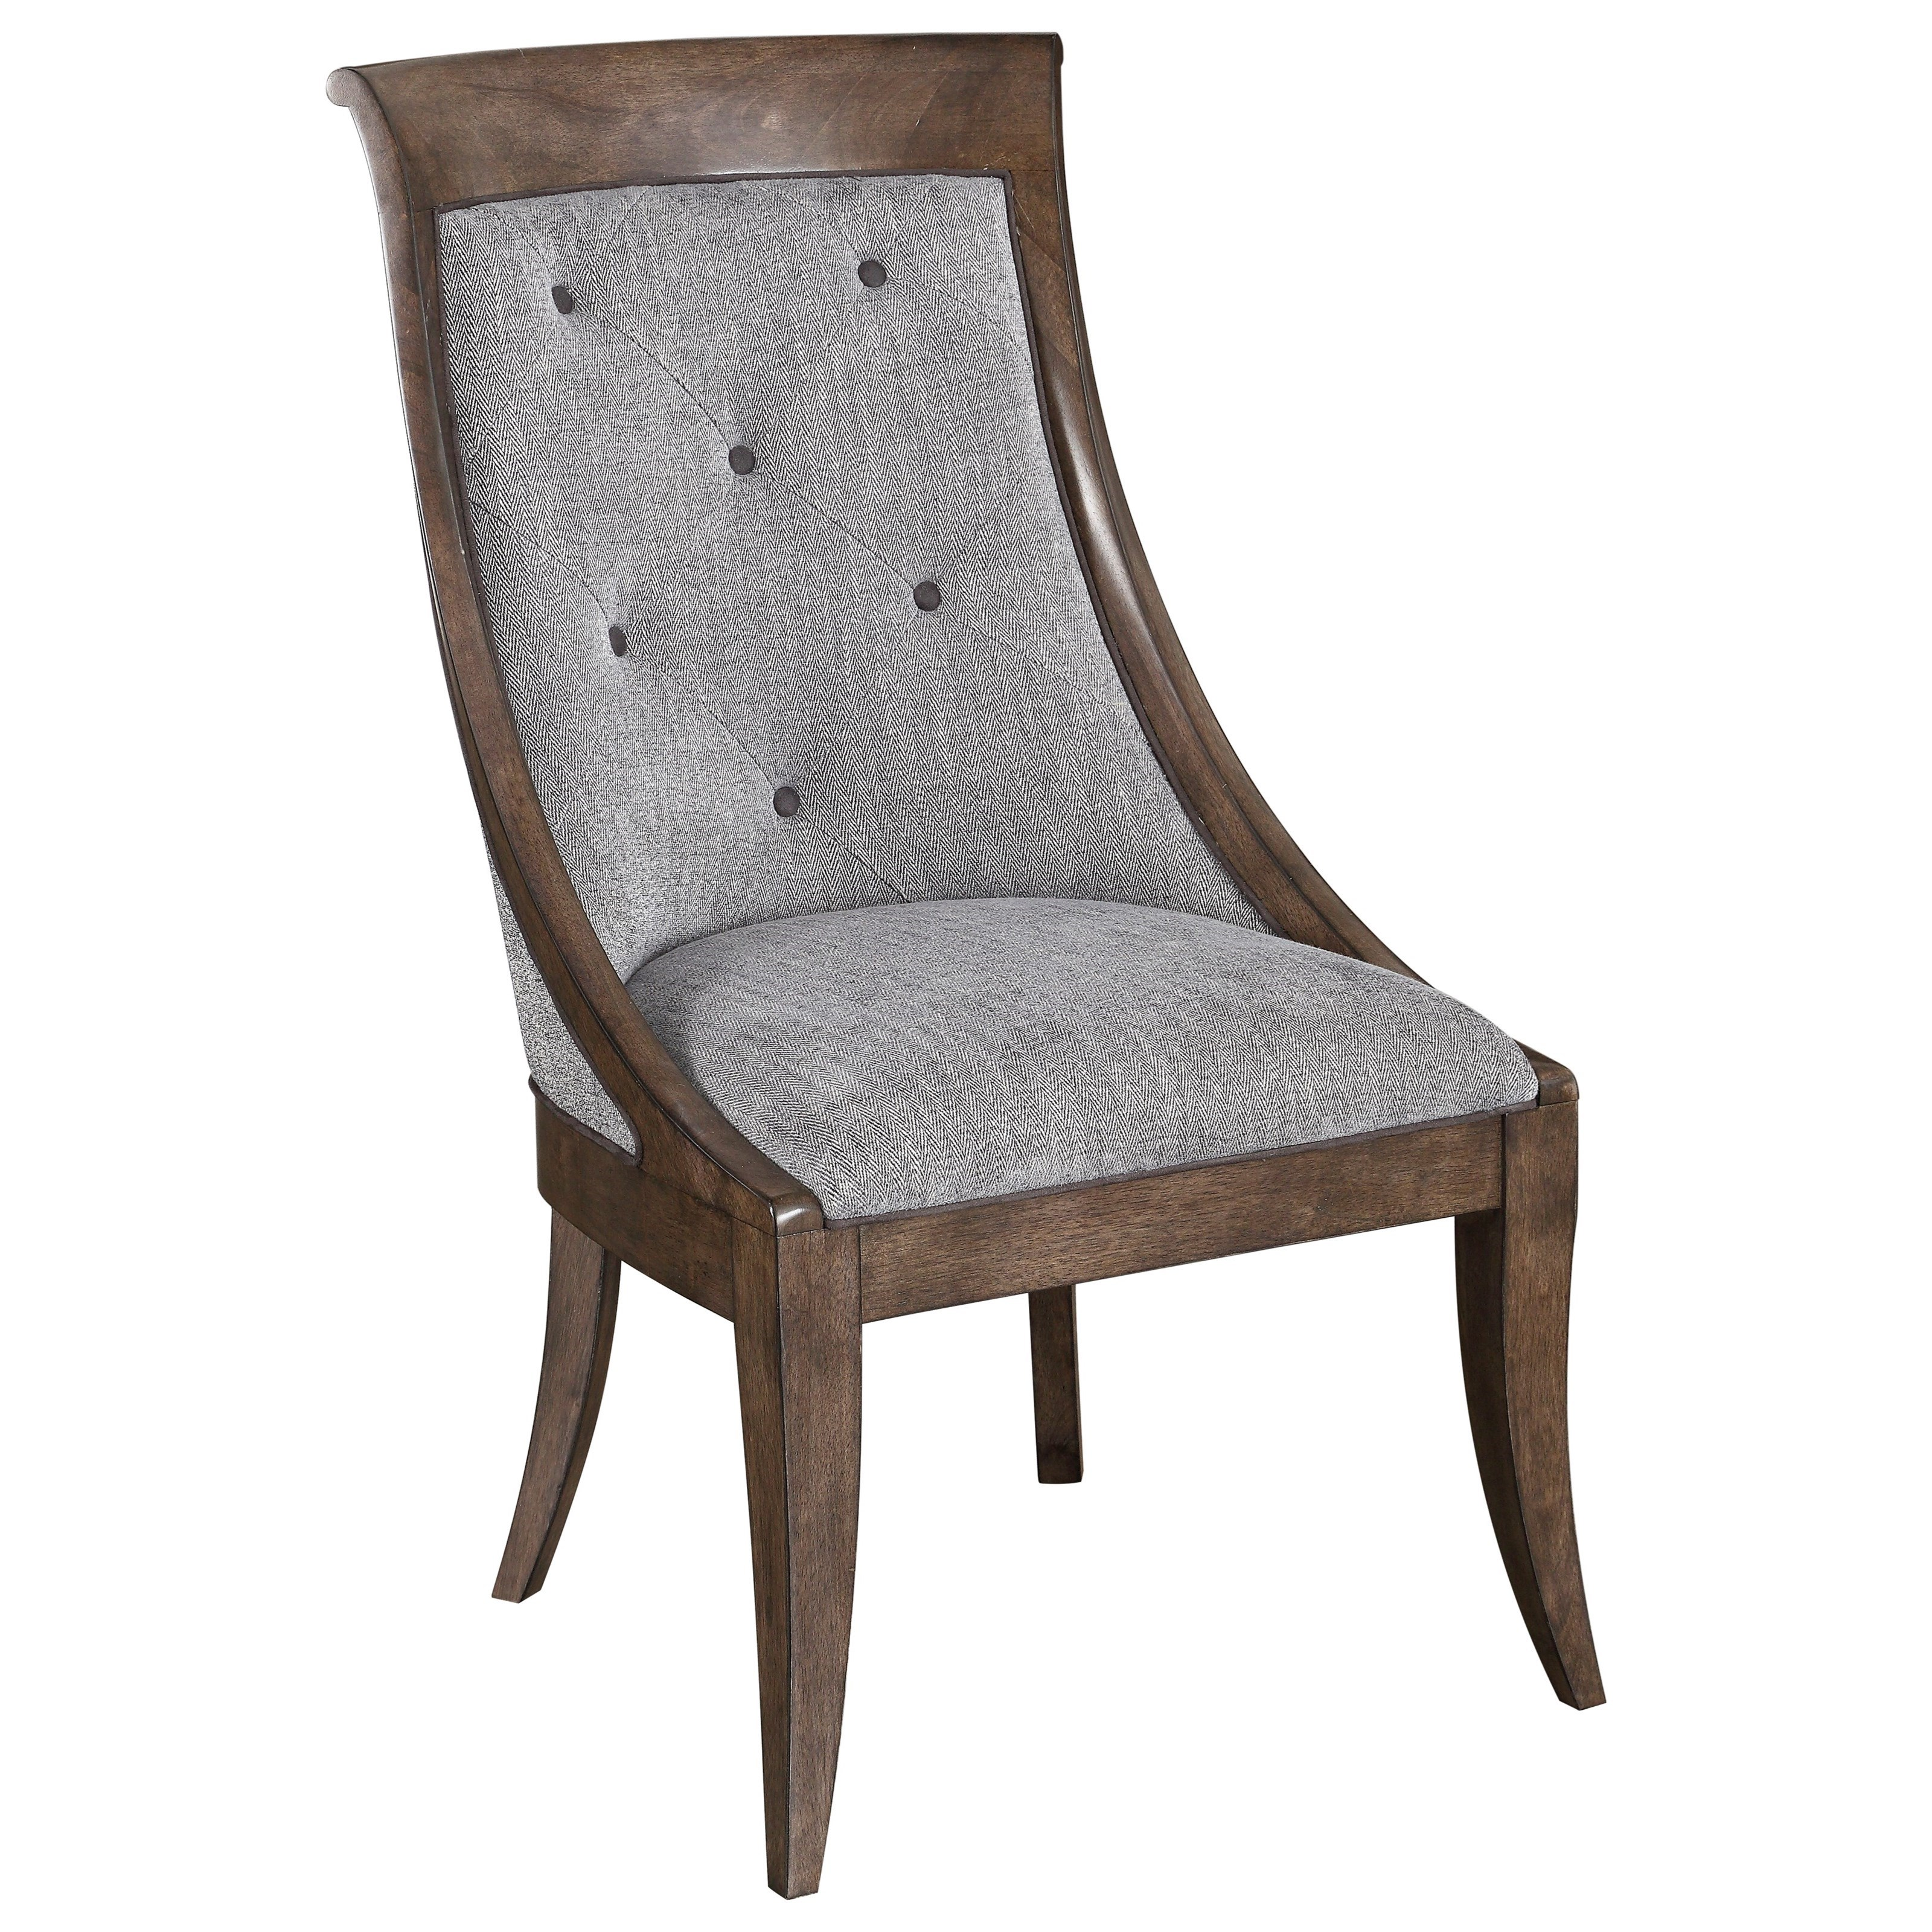 Tufted Sling Chair